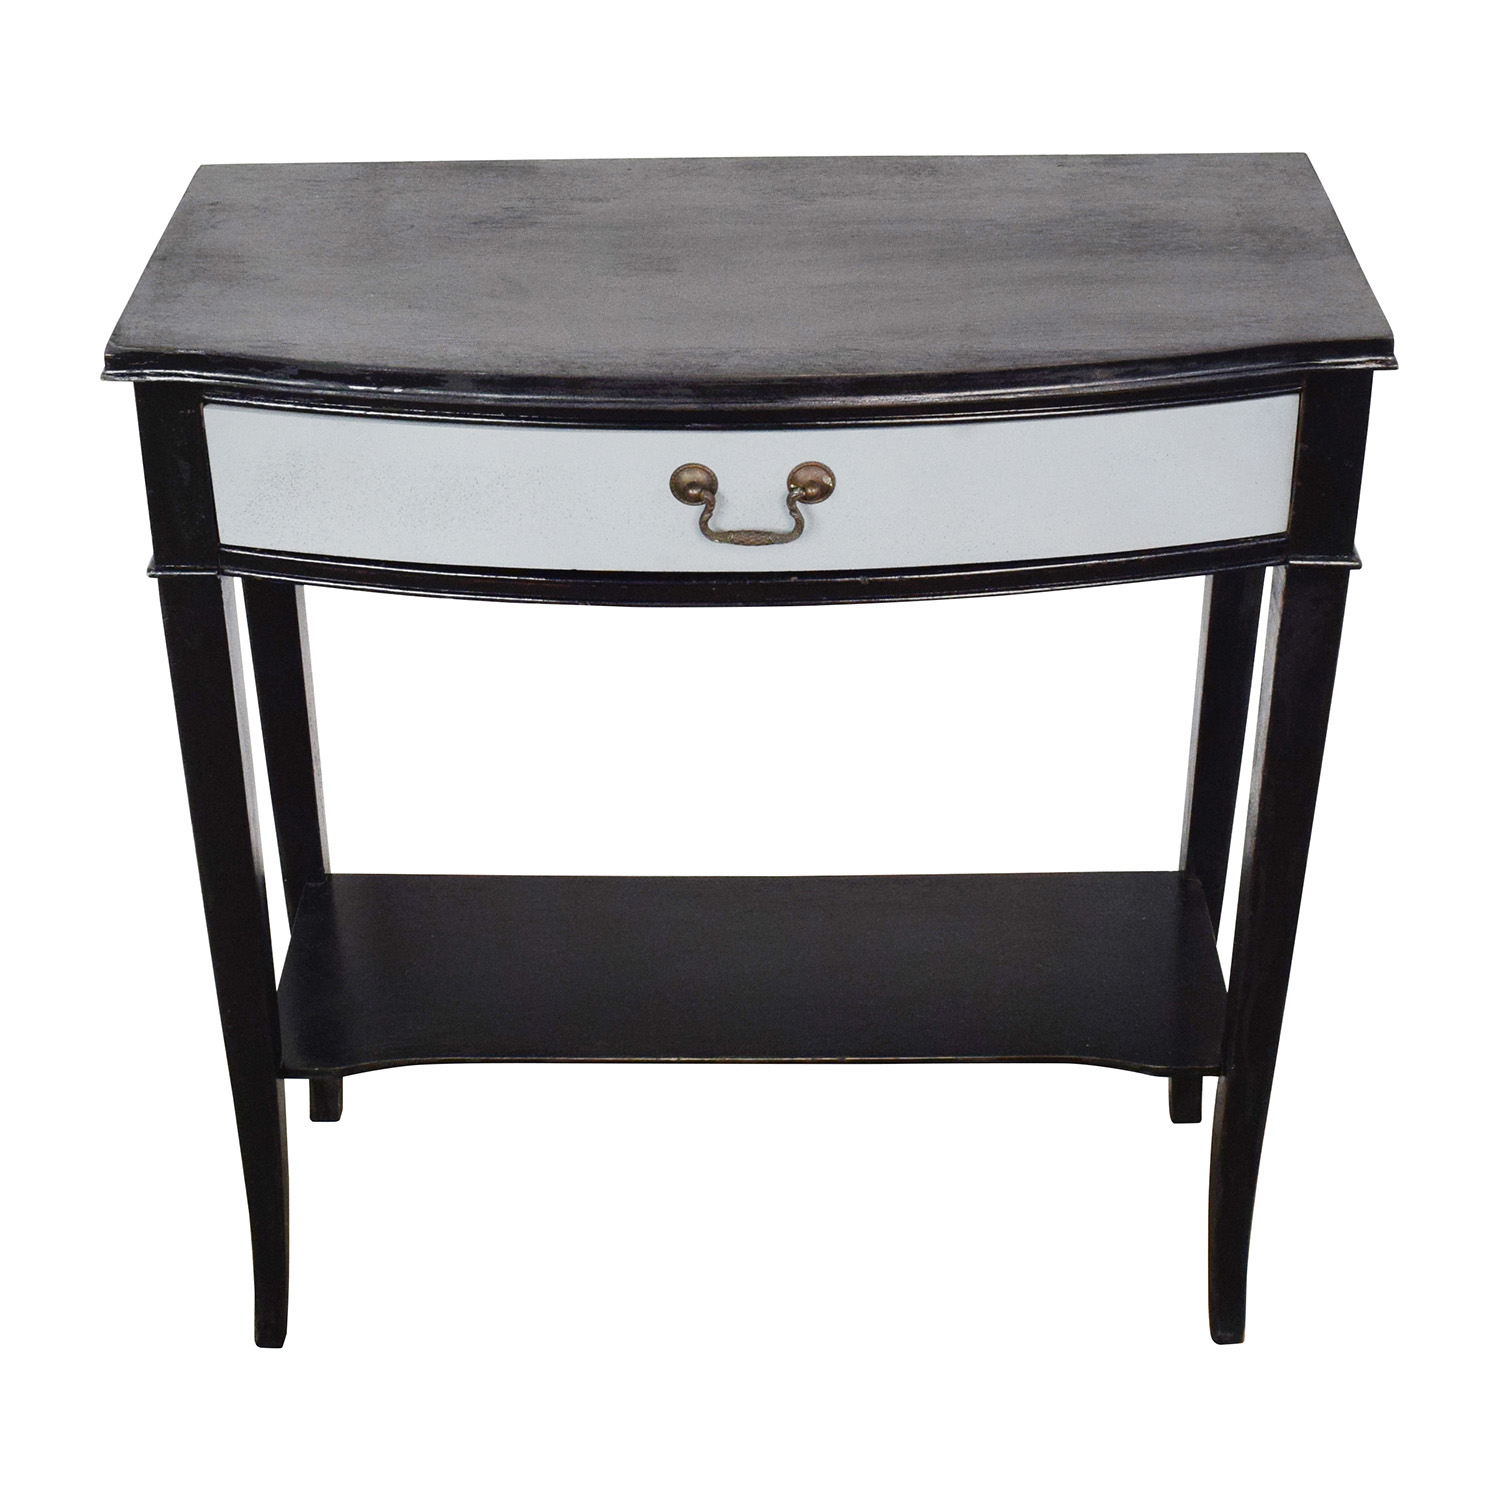 Etsy Etsy Vintage Black and Grey Console Table for sale